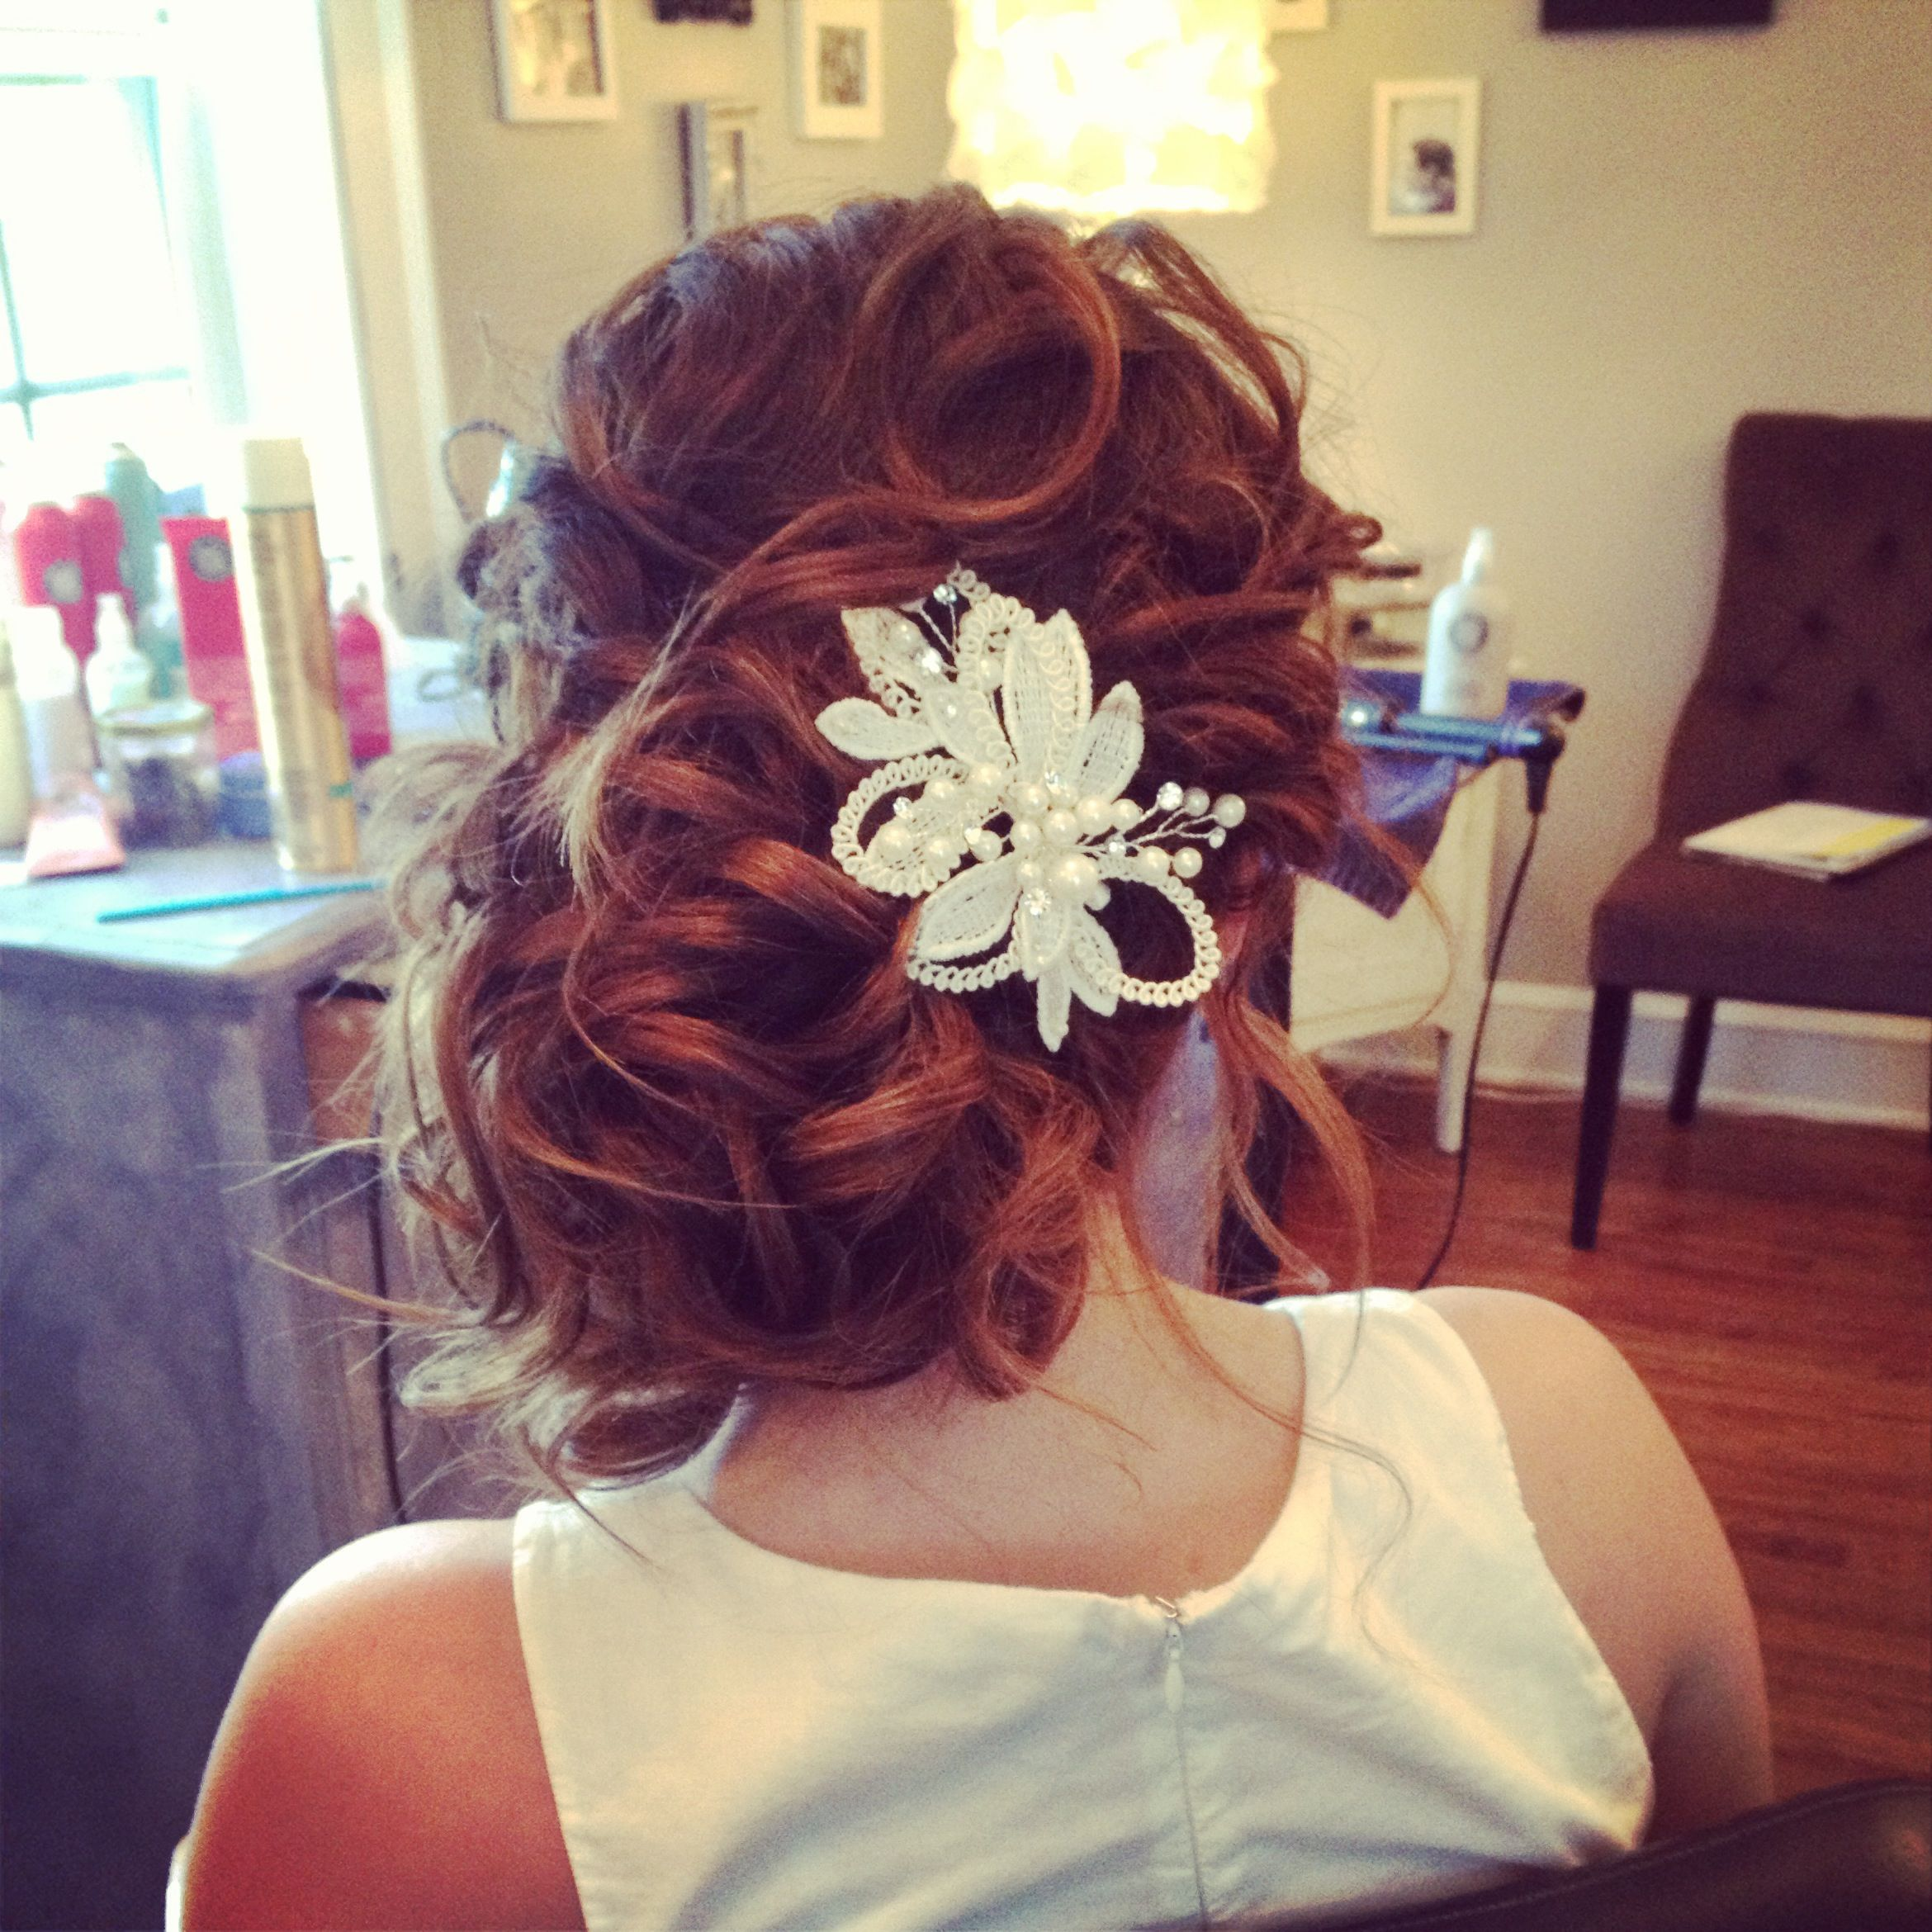 messy wedding hair. messy bridal hair style. ash and co